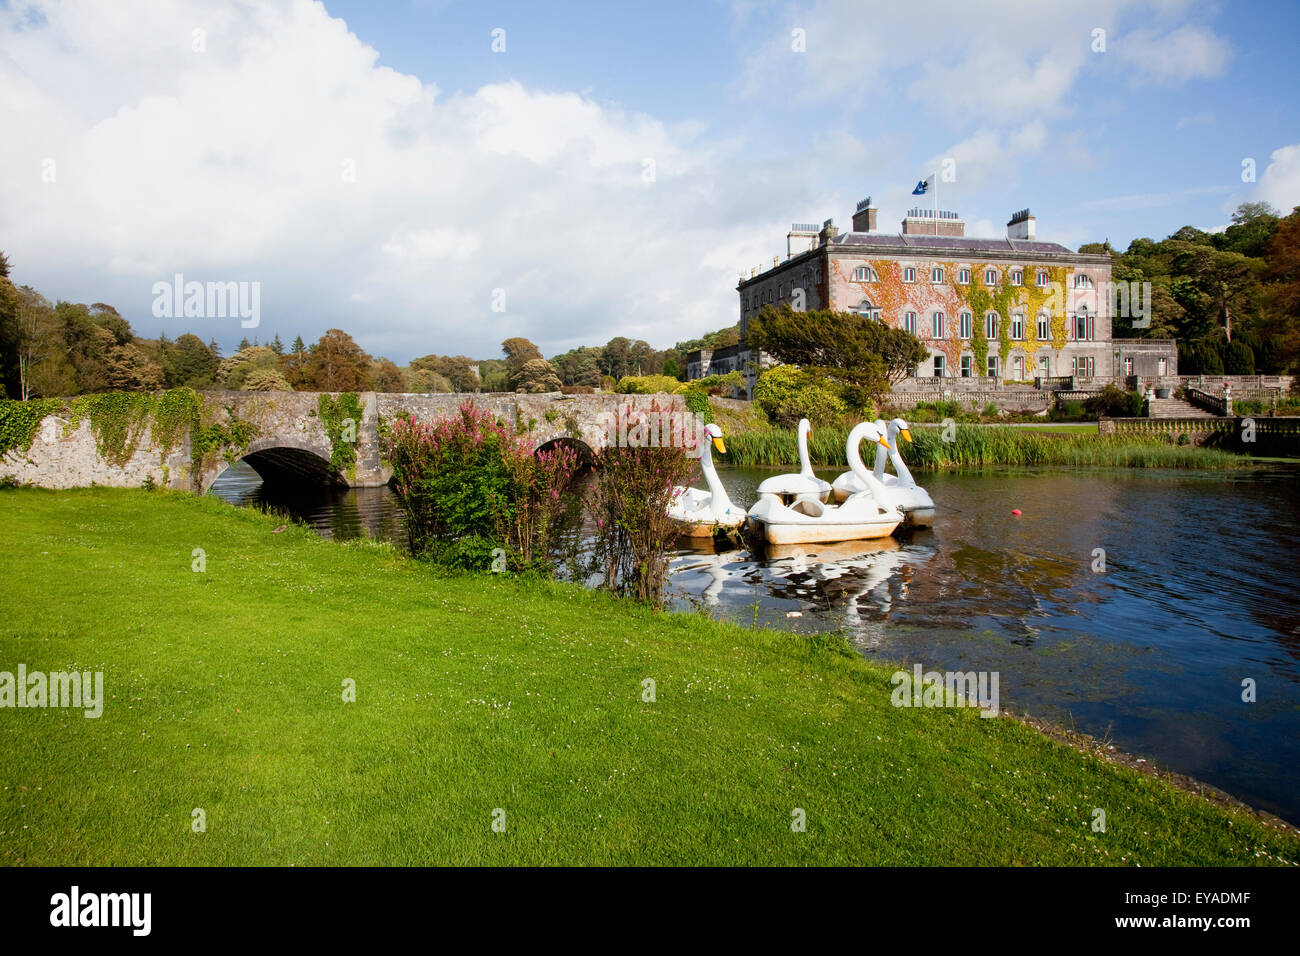 Paddleboats In The Shape Of Swans In A Lake At Westport House; Westport, County Mayo, Ireland Stock Photo